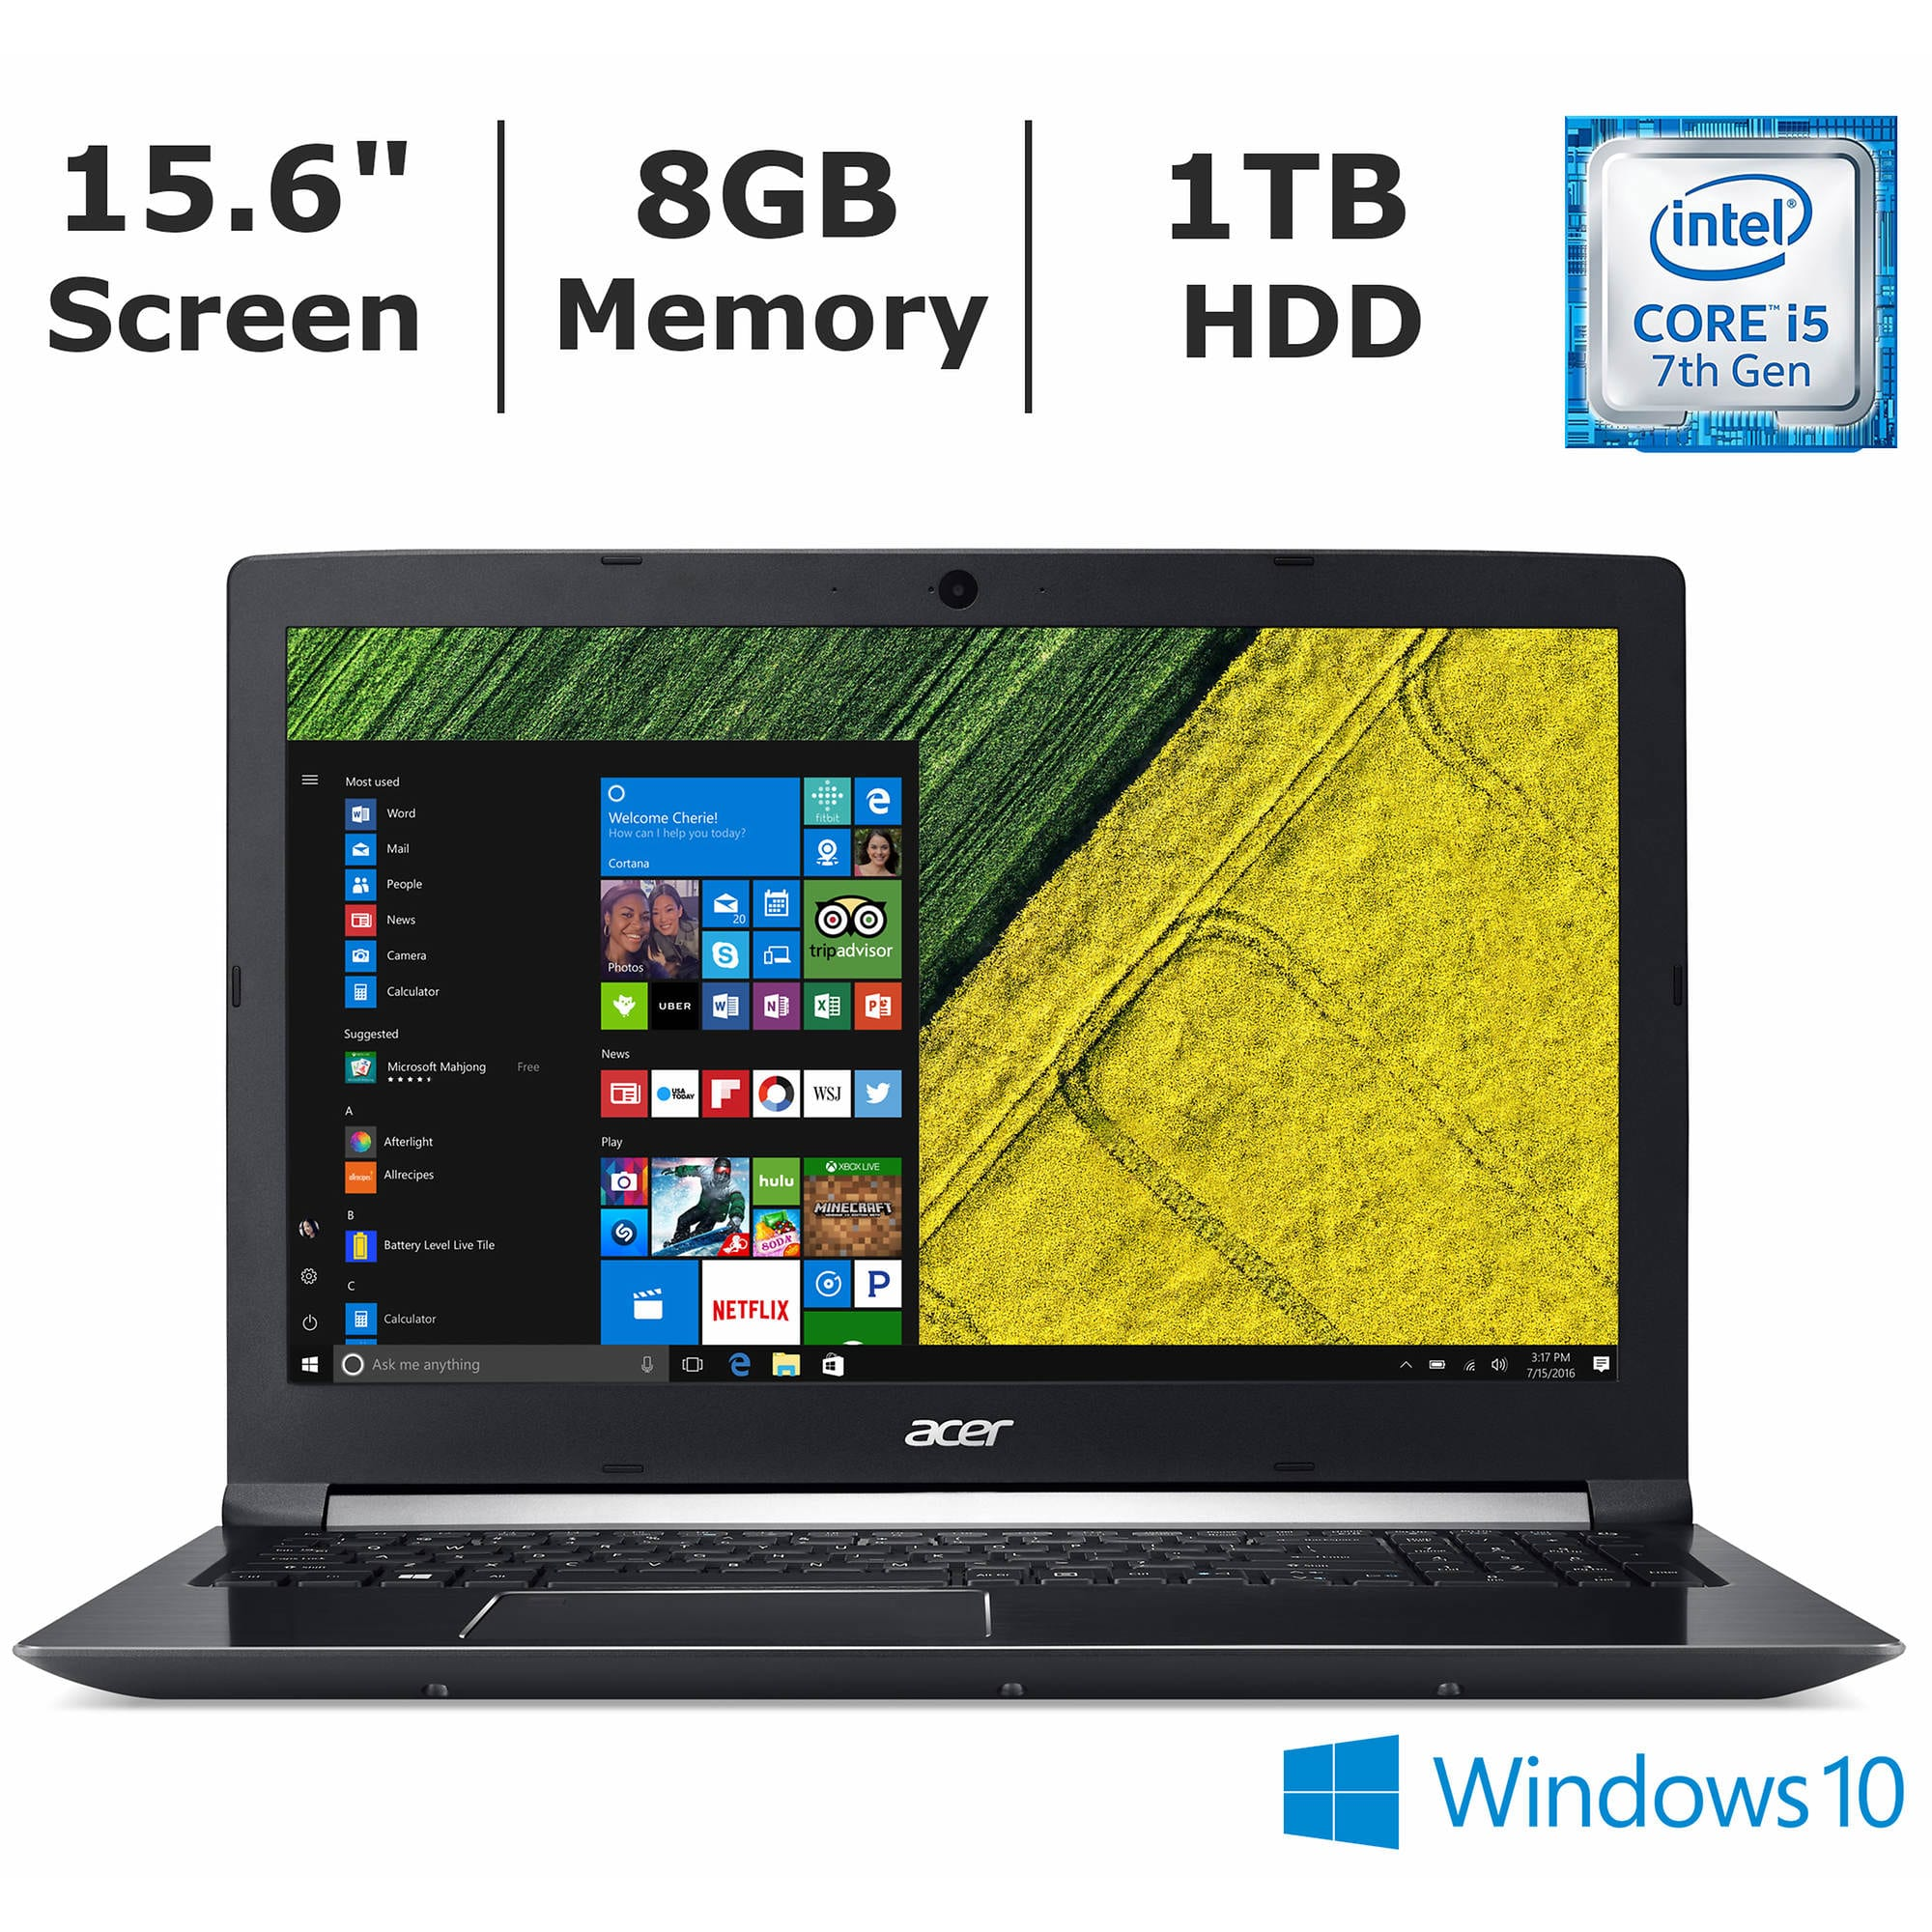 Acer Aspire 7 Gaming laptop: 15.6'' FHD IPS, i5-7300HQ, 8GB DDR4, 1TB HDD, GTX 1050 2GB, Type-C, Win10H @ $549.99 + F/S